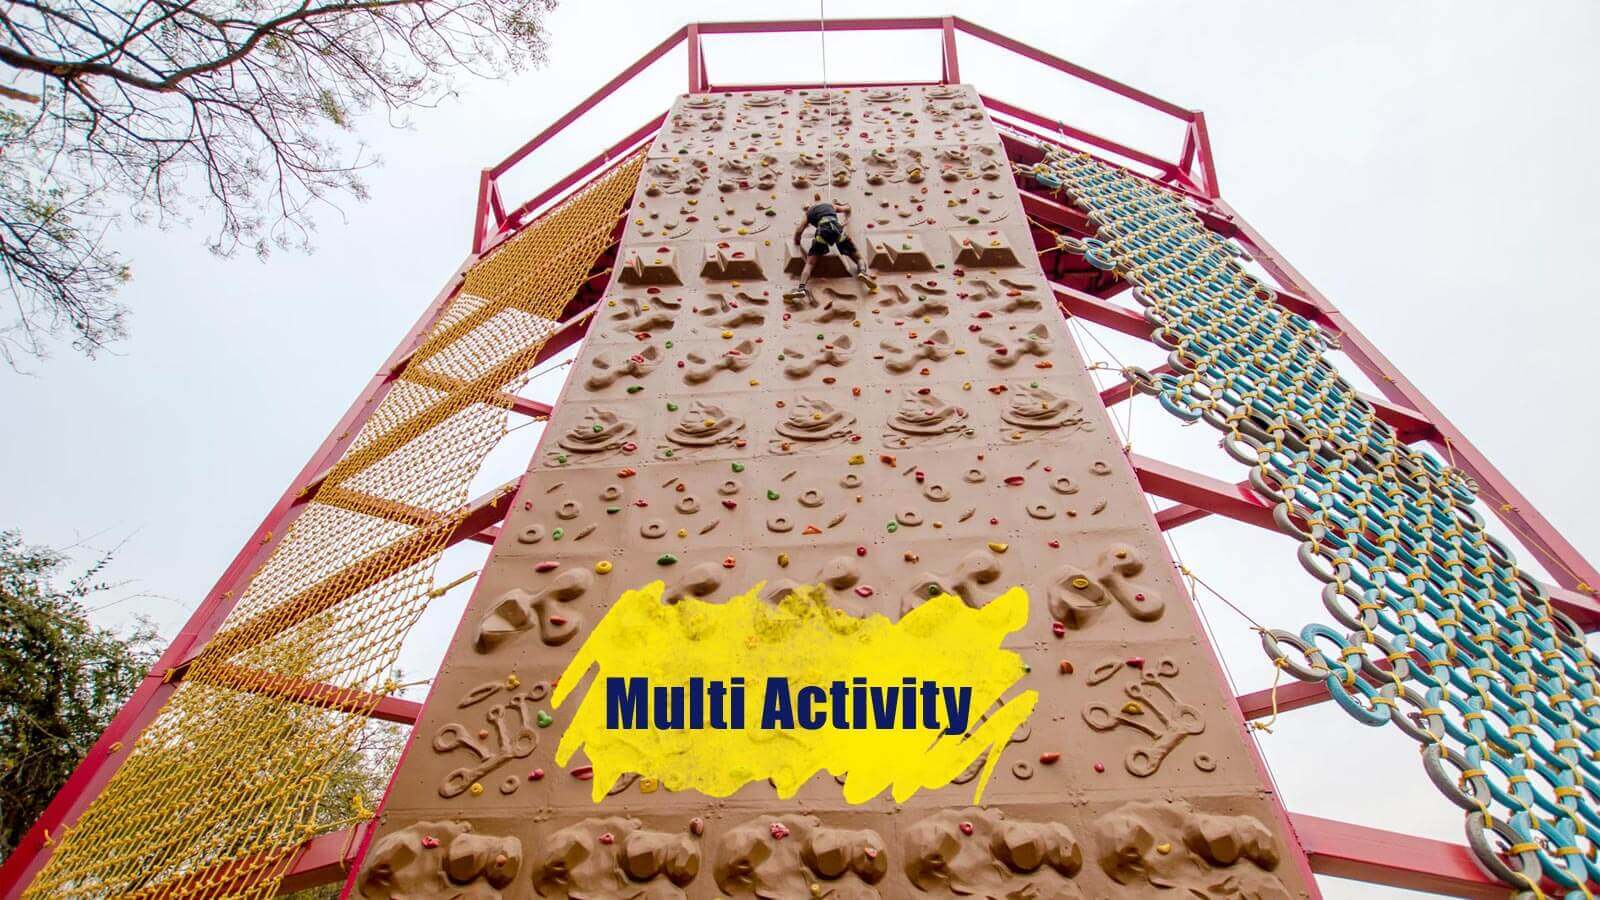 Multi Activity Tower Adventure